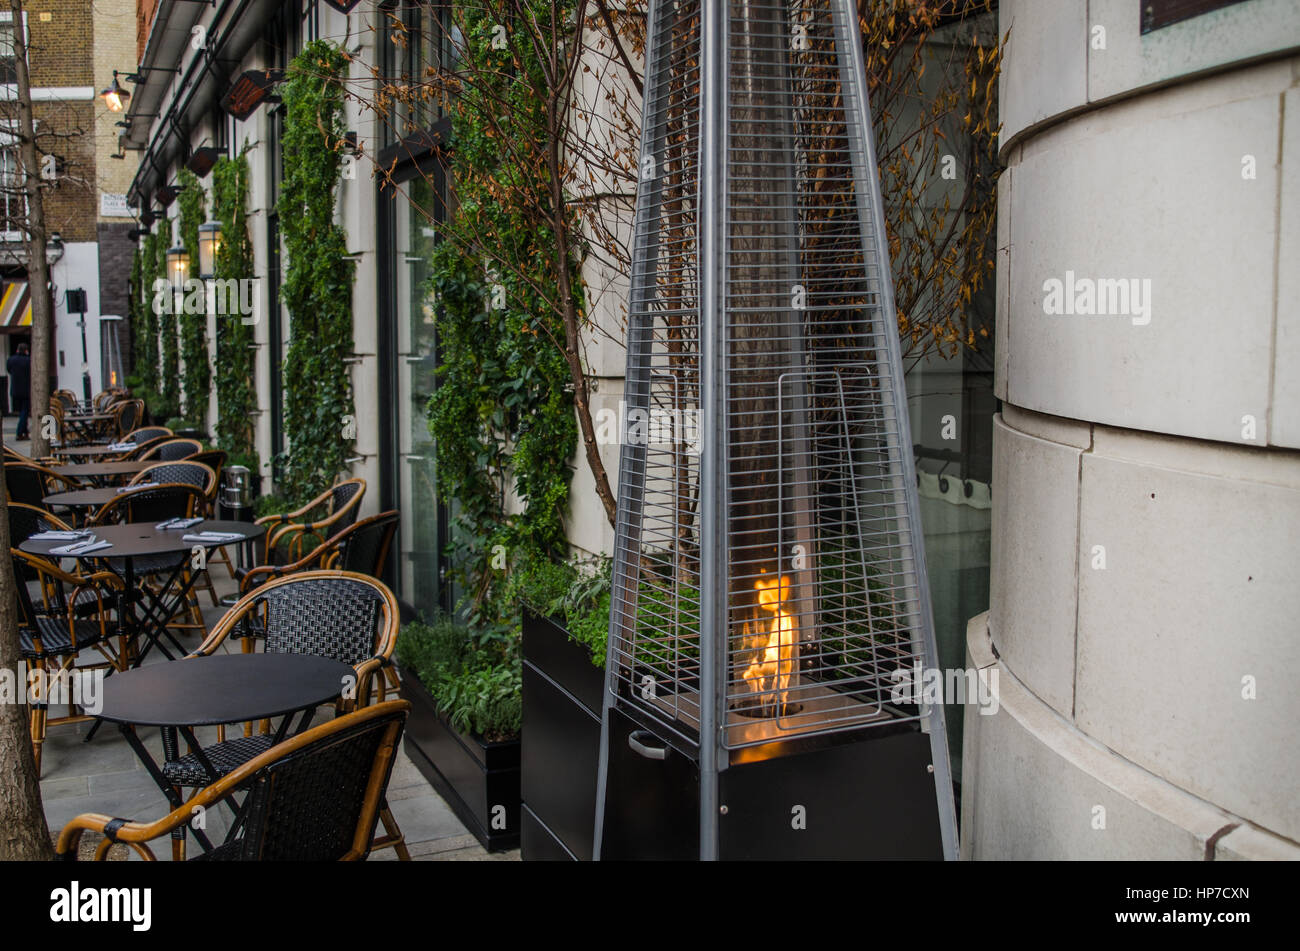 front of the restaurant, tables outside for customers prepared, gas lamp for heating, green plants on the wall - Stock Image